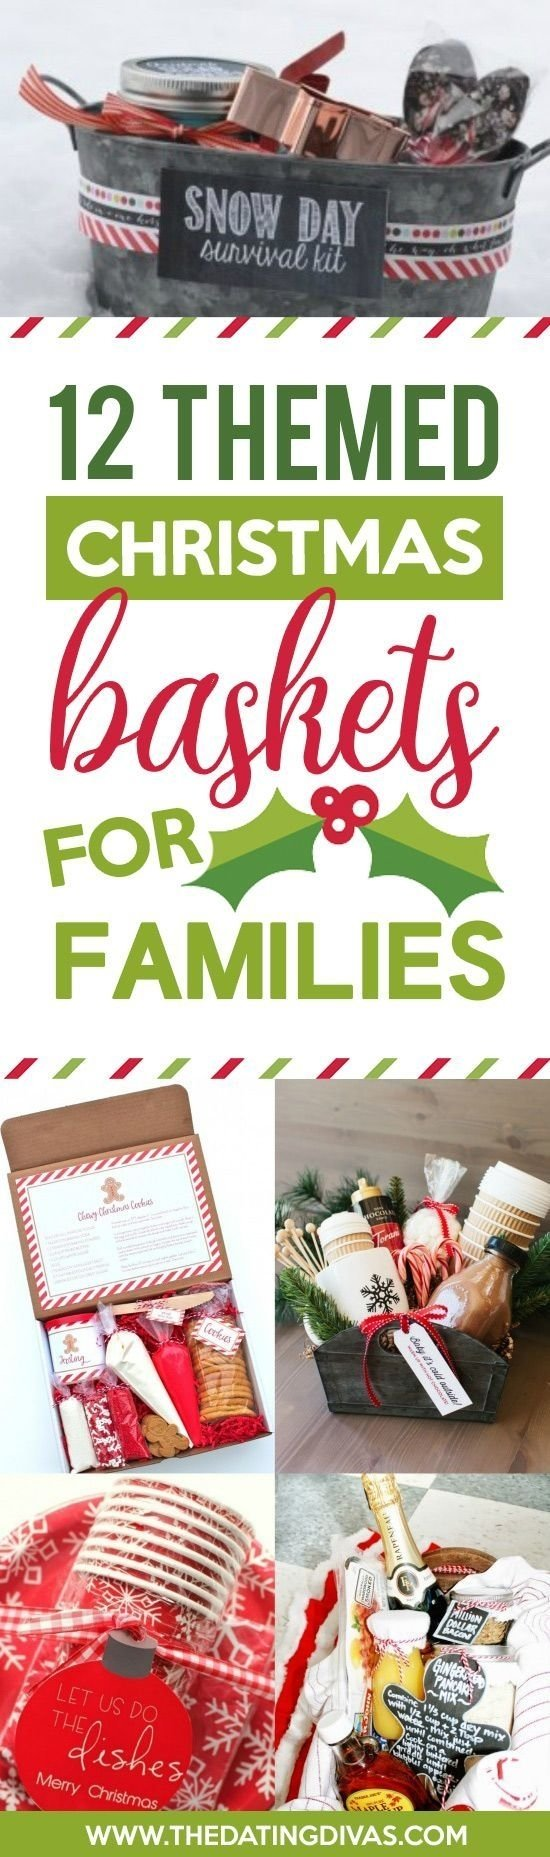 10 Awesome Family Gifts Ideas For Christmas 2427 best homemade gift ideas images on pinterest christmas